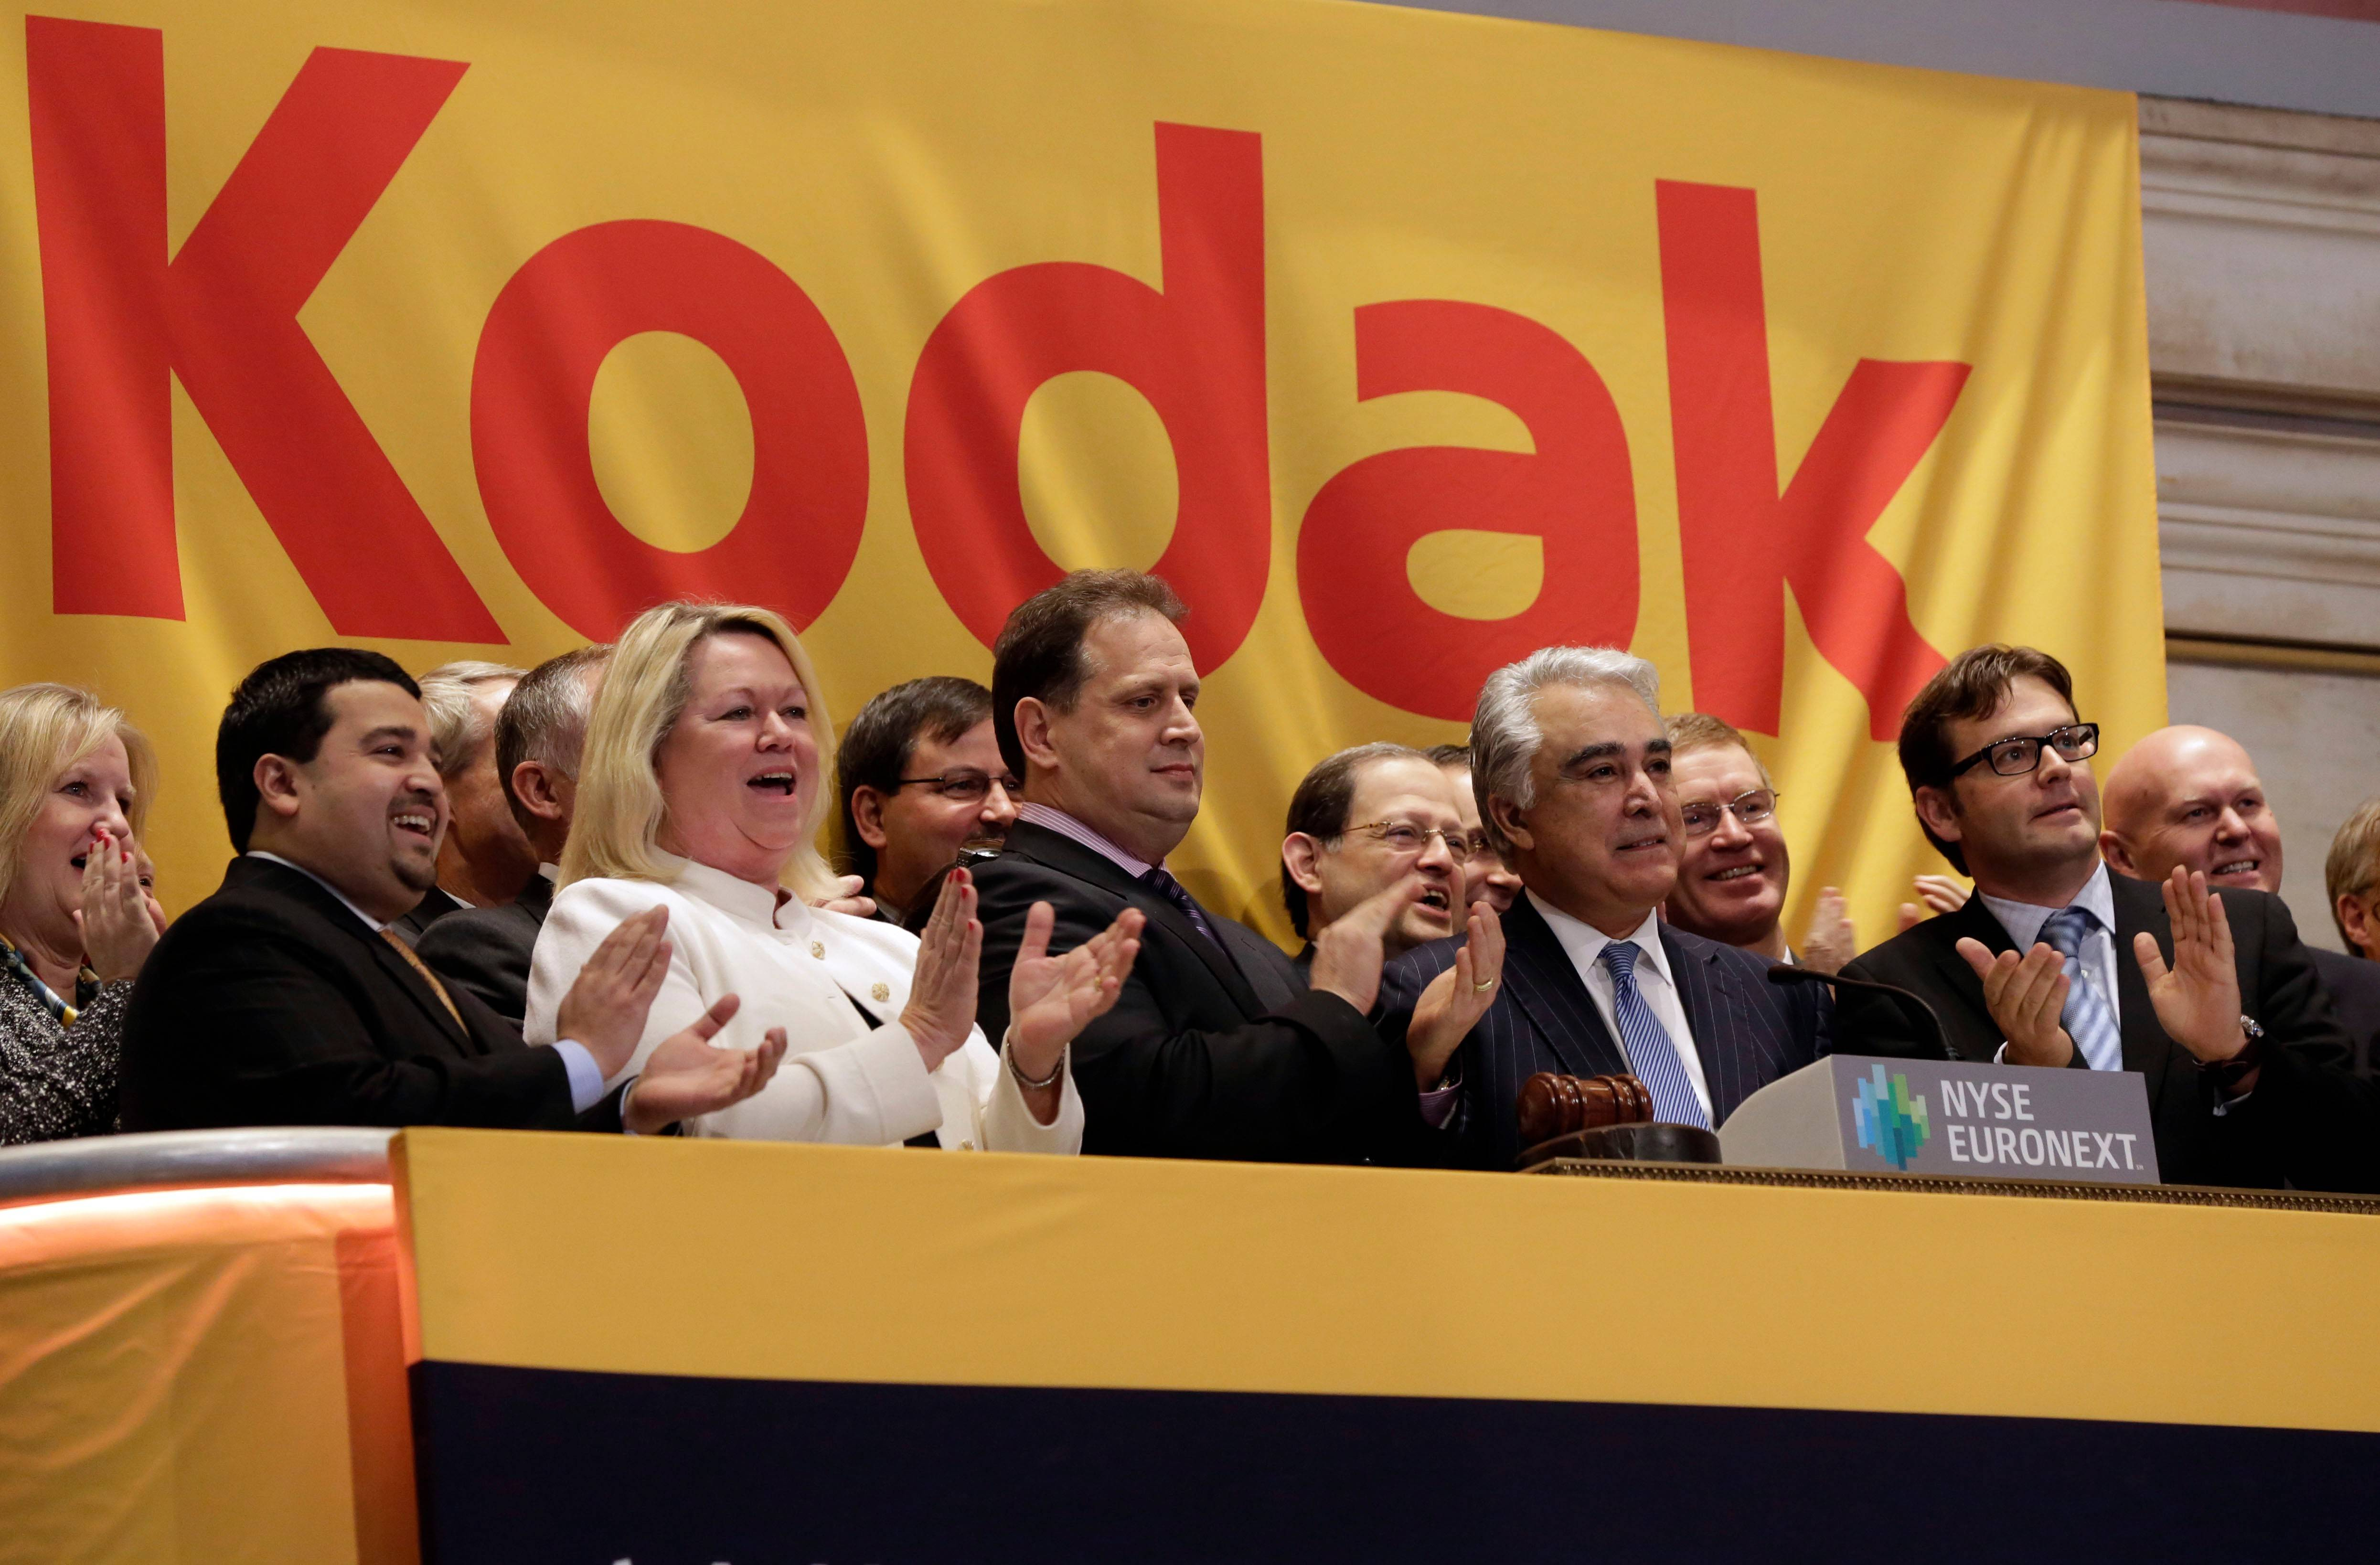 When Kodak announced that it was planning to launch its own cryptocurrency, investors swooned. By the end of the next day, Kodak's share price had nearly quadrupled in the midst of a broader cryptocurrency frenzy that's gripped the public since mid-last year.